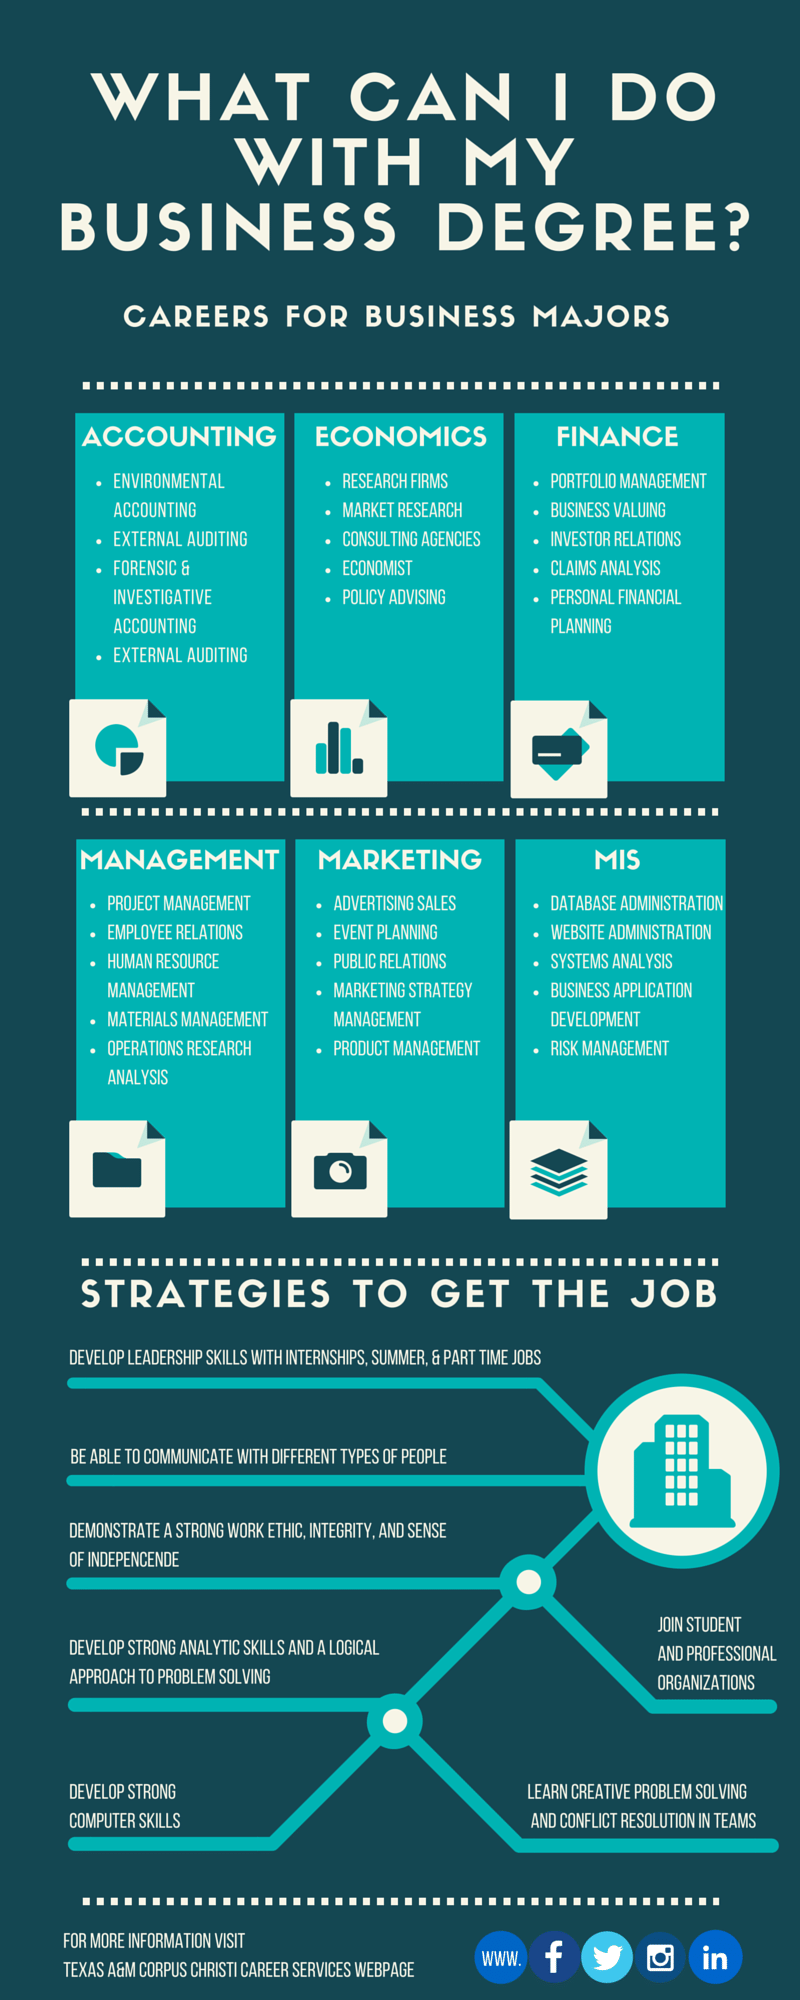 What can I do with My Business degree? Careers for